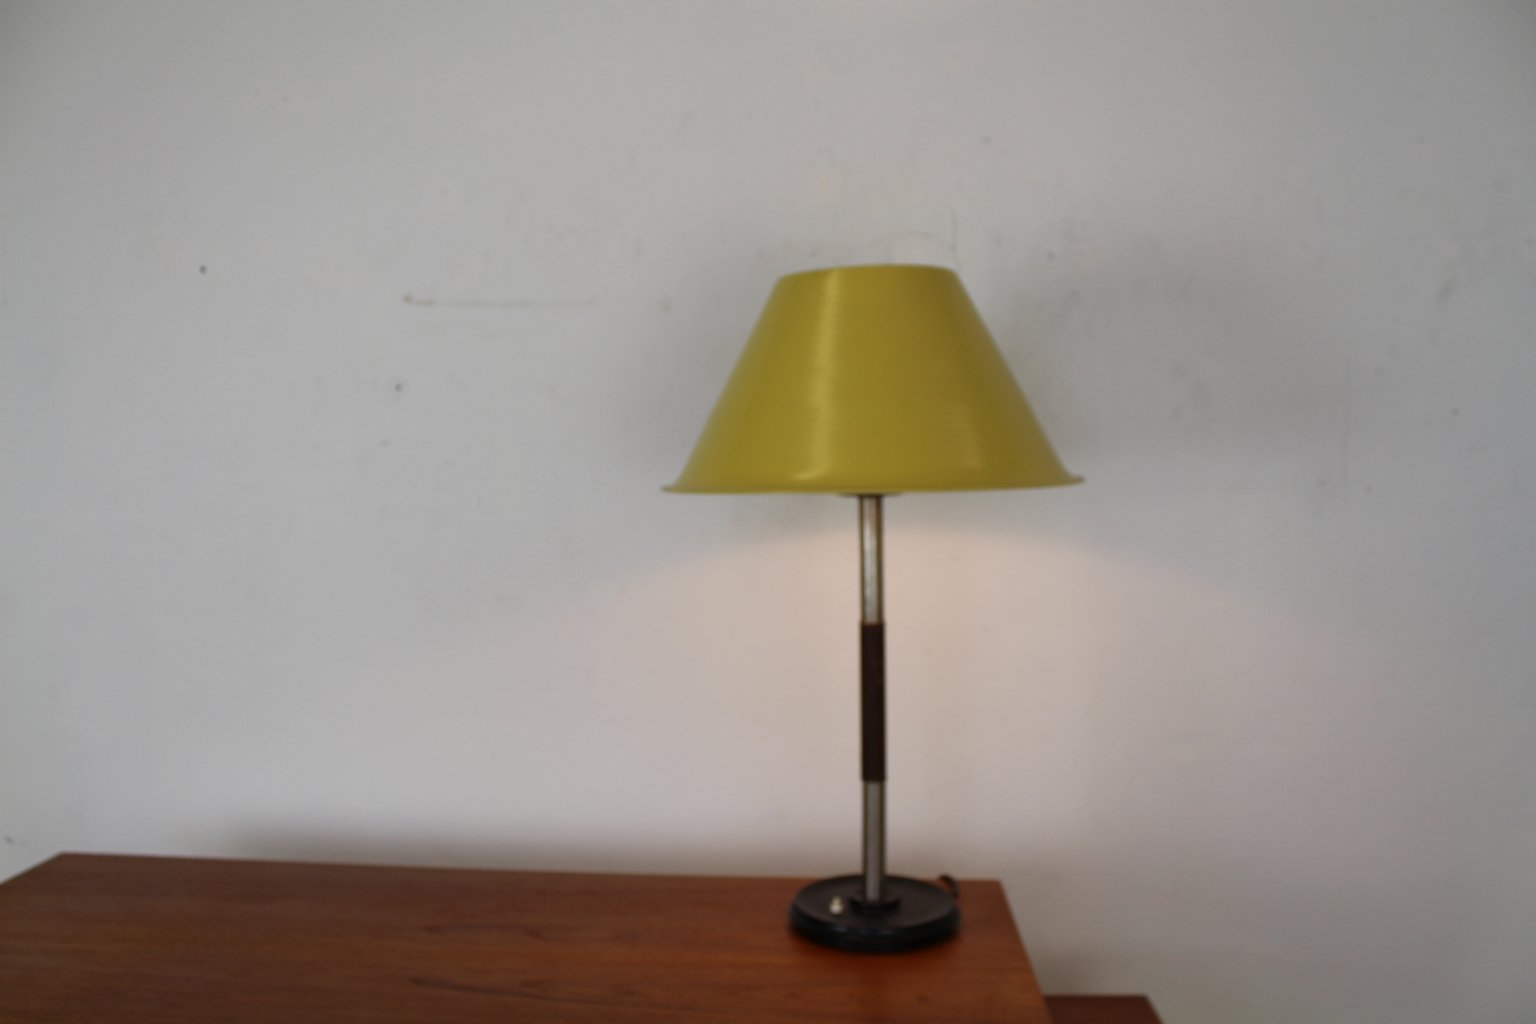 Lamp Glas In Lood Model 5020 Table Lamp From Gispen 1965